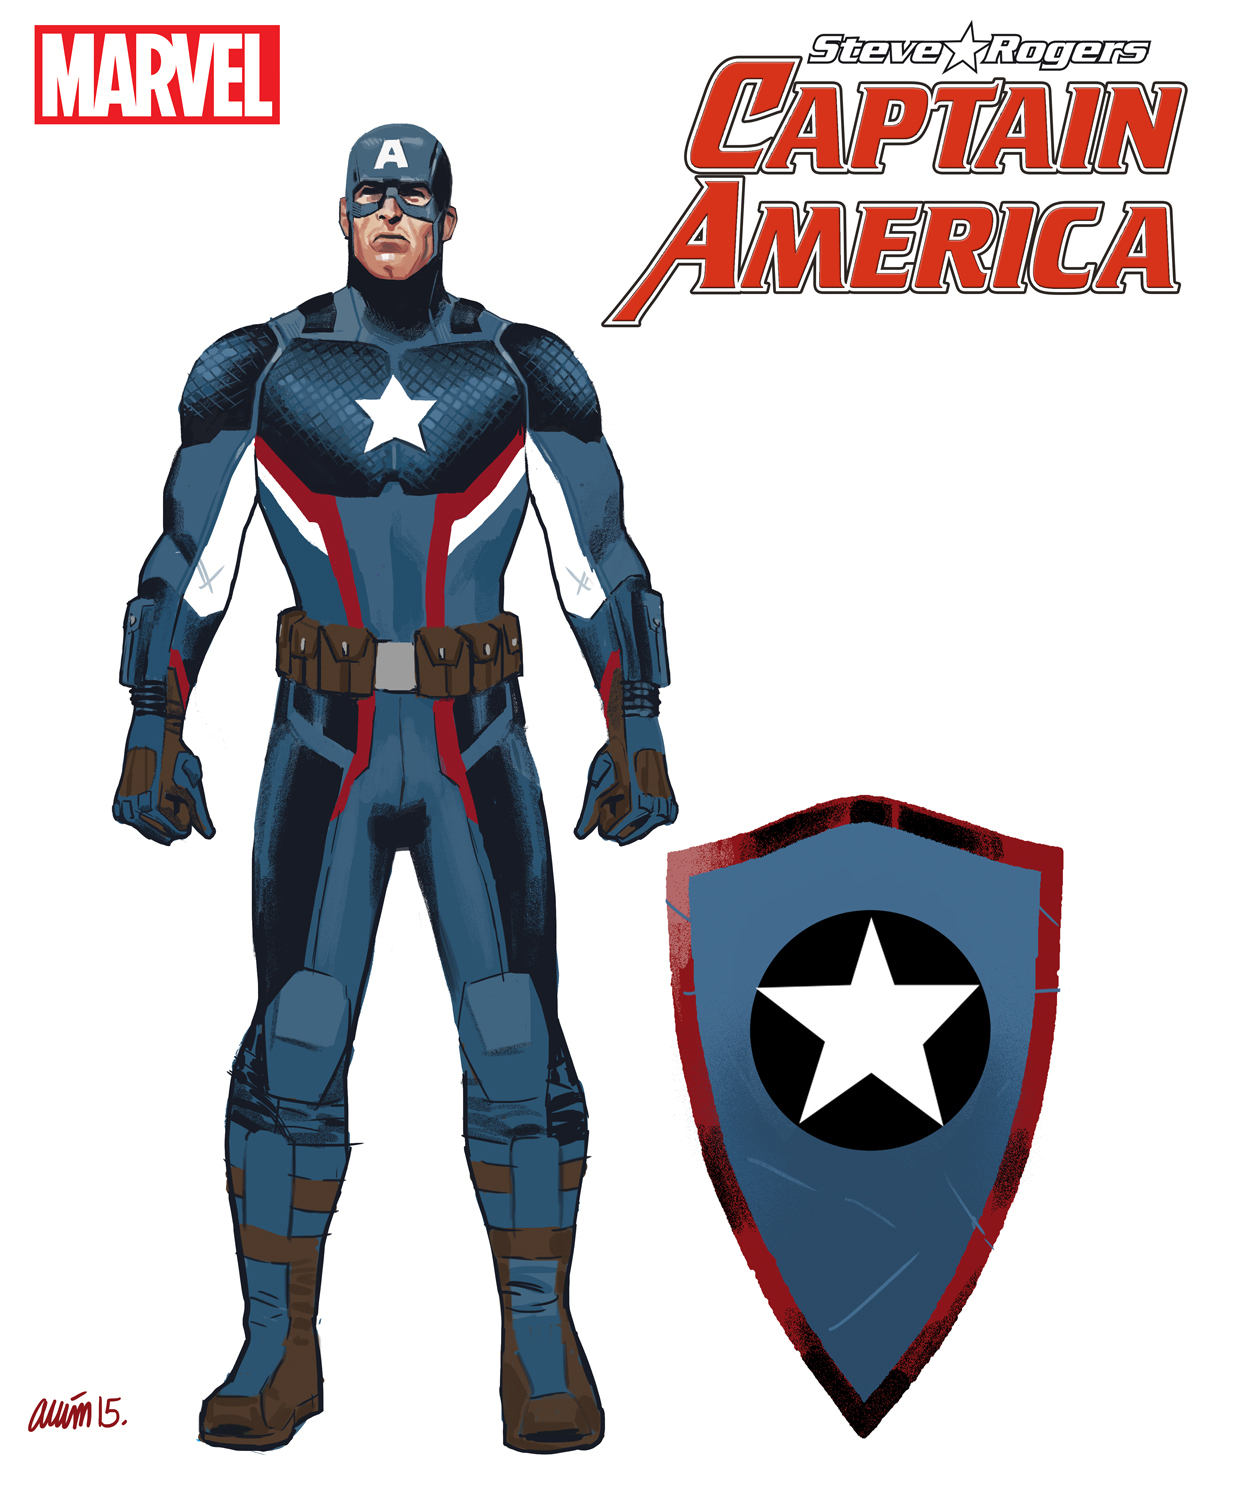 173837 Steve Rogers Back As Captain America on Latest Writing A Mission Statement